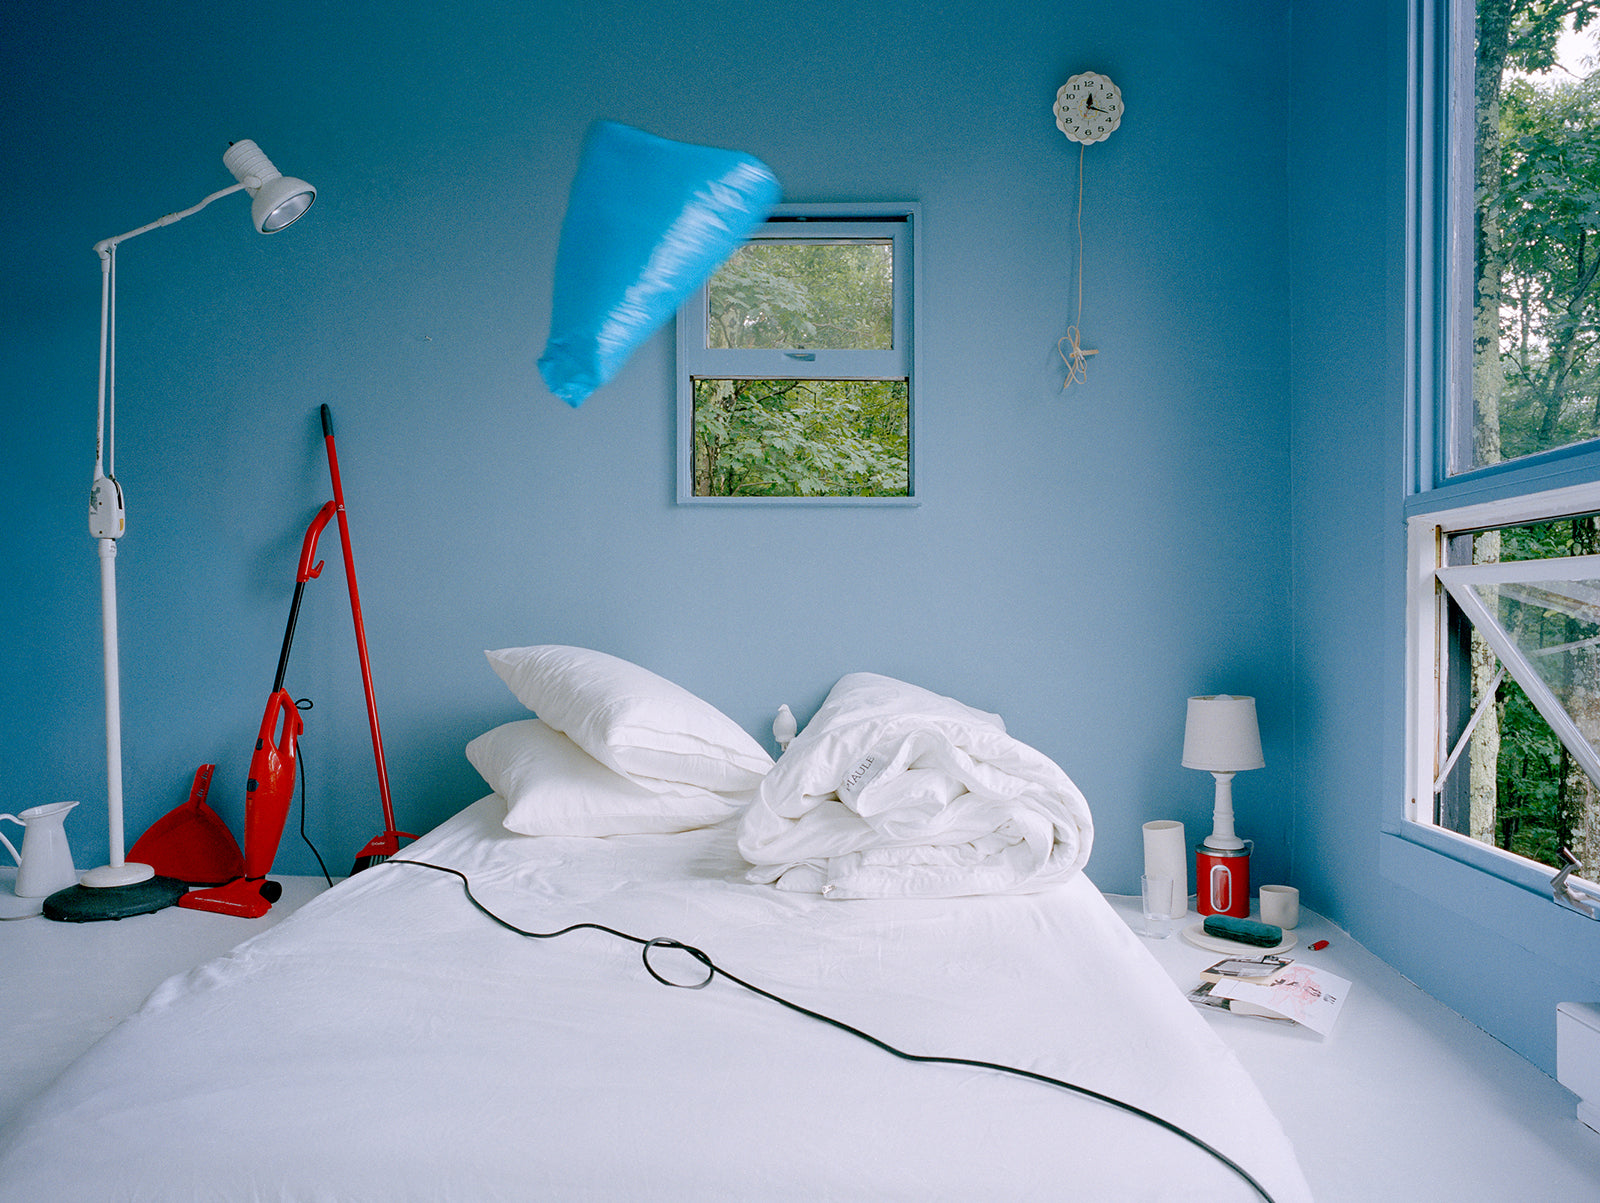 weird bedroom scene with vacuum cord across white bedding and blue bag flying through the air